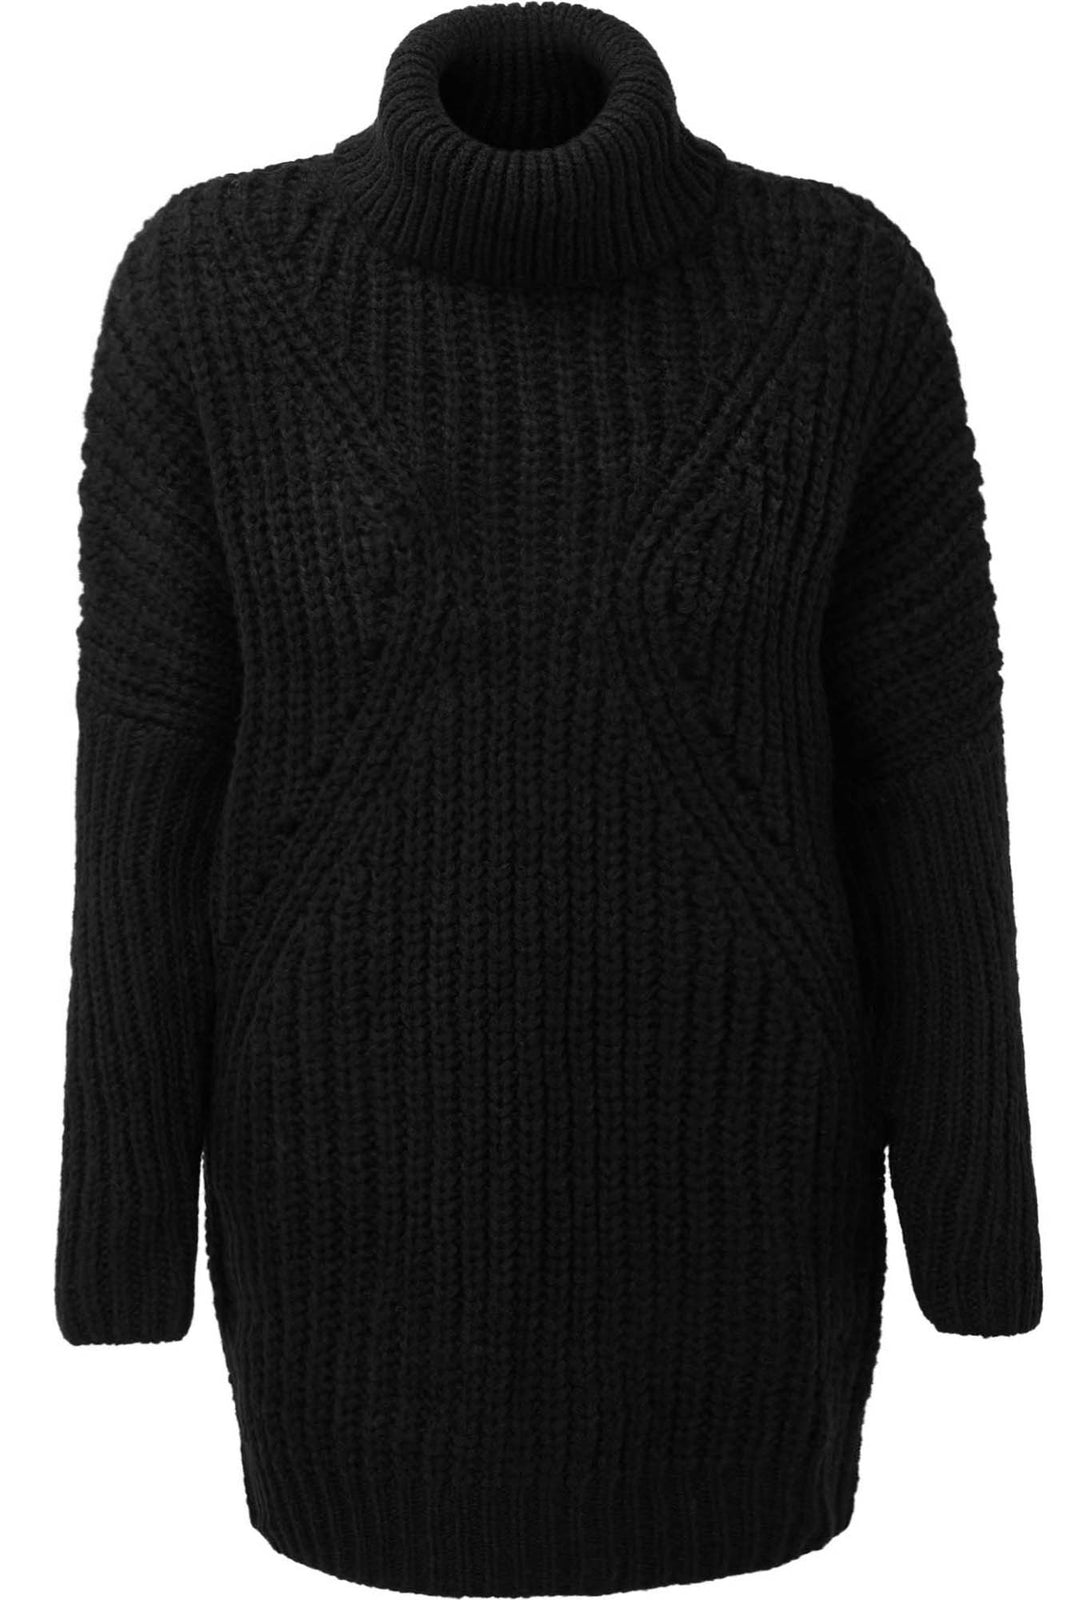 Aeon Knit Sweater [PLUS]